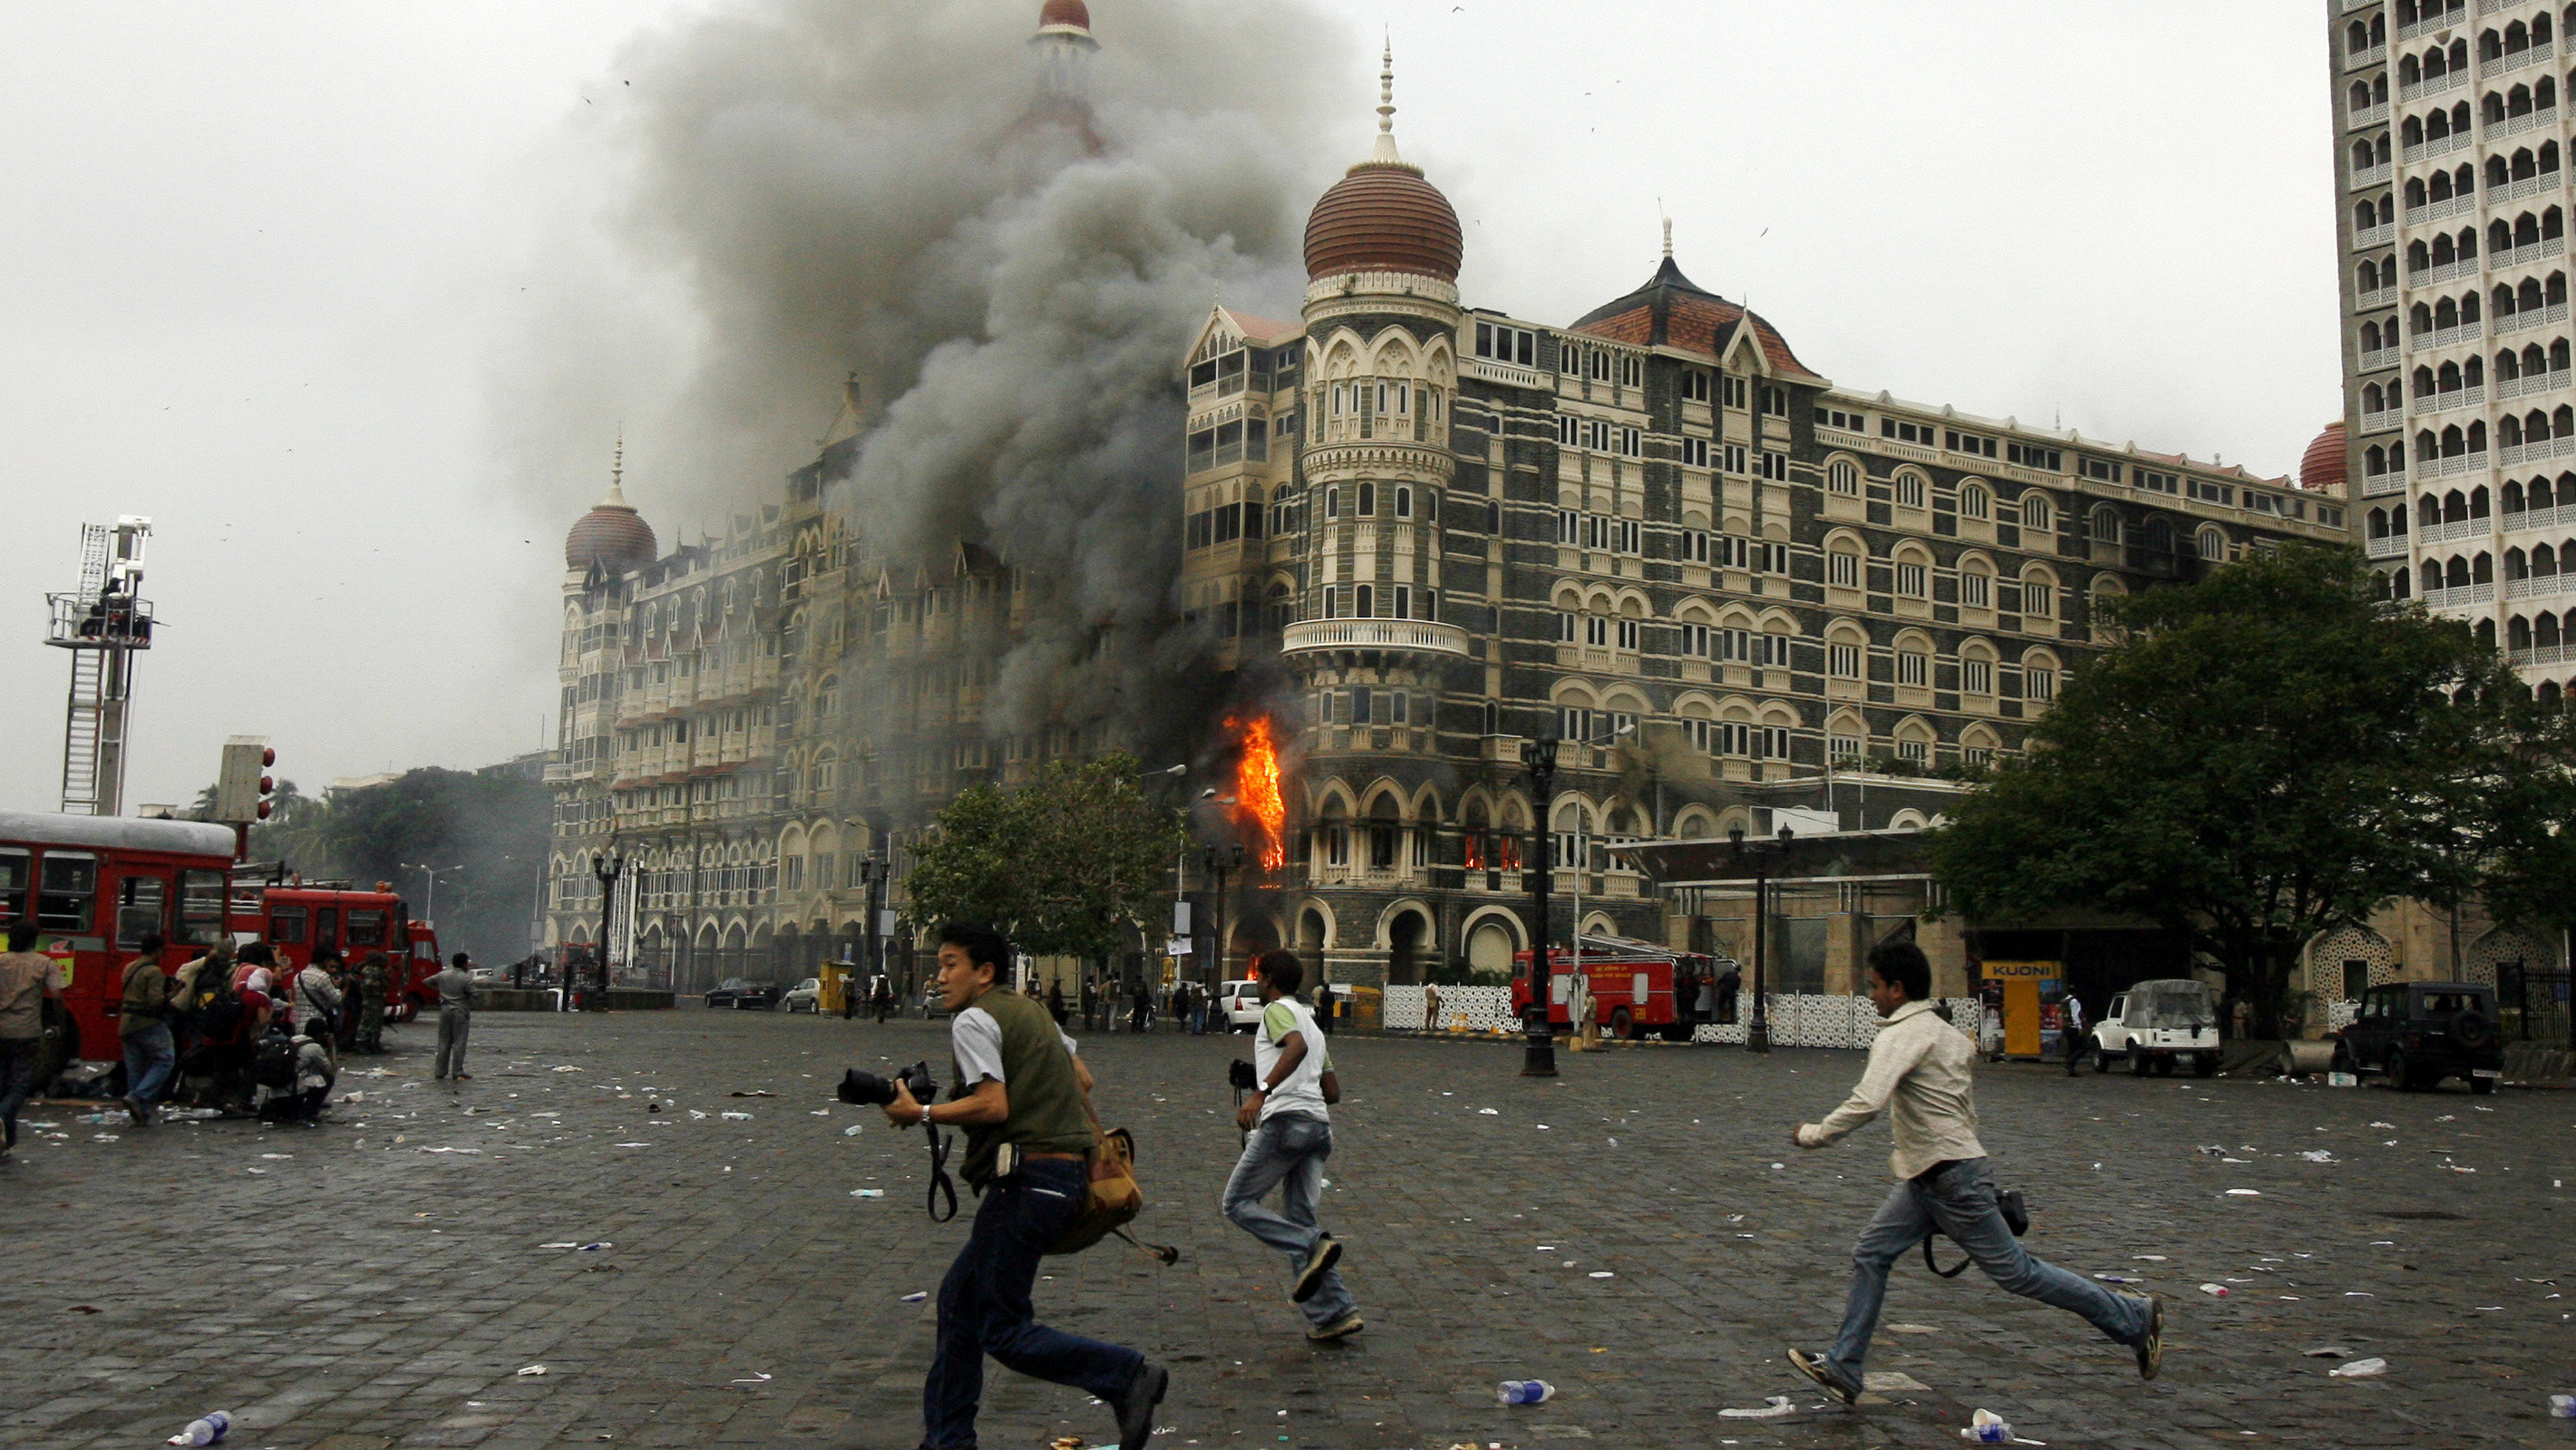 Photographers run past burning Taj Mahal Hotel during a gun battle in Mumbai November 29, 2008. Operations by Indian commandos to dislodge Islamist militants at Mumbai's Taj Mahal hotel ended on Saturday, Indian television channels quoted officials as saying. The hotel came under heavy gunfire and flames leaped out of the building shortly before the announcement. REUTERS/Arko Datta (INDIA)